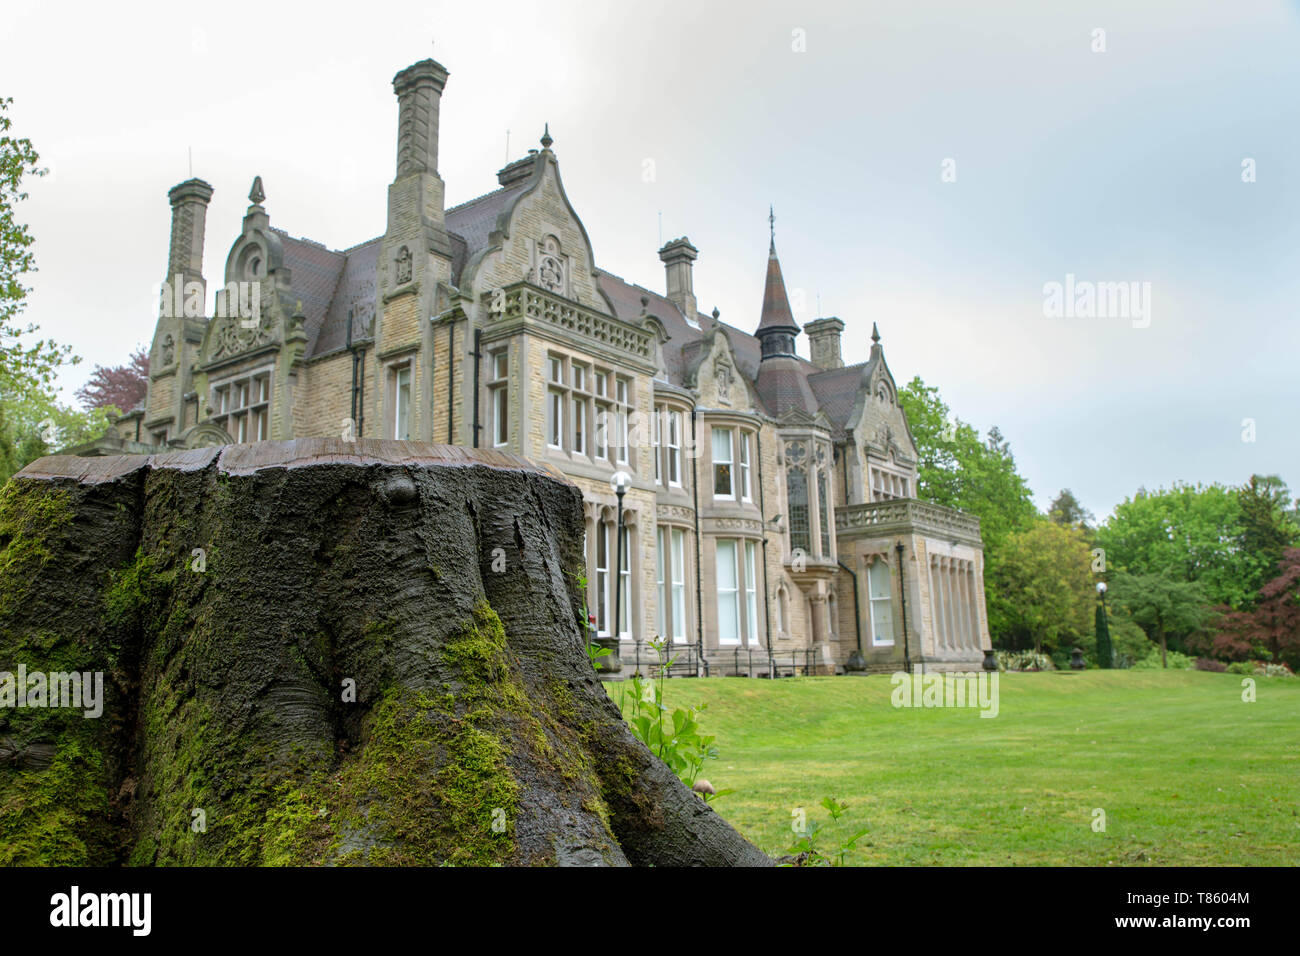 Denzell House viewed behind a tree stump within the ornate gardens, Dunham Rd, Bowdon, Trafford, Greater Manchester - Stock Image